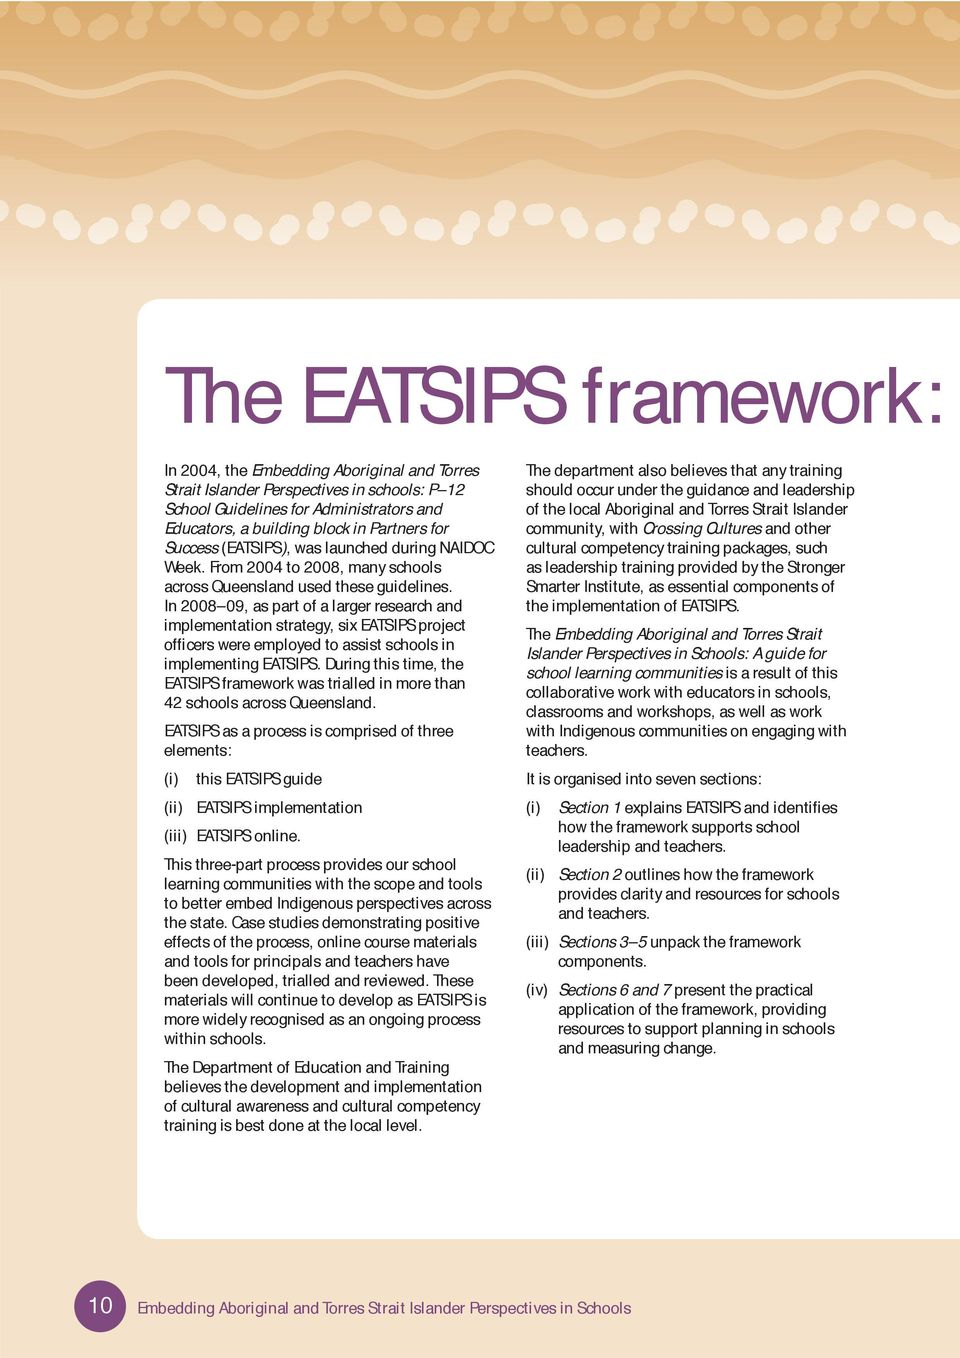 In 2008 09, as part of a larger research and implementation strategy, six EATSIPS project offi cers were employed to assist schools in implementing EATSIPS.